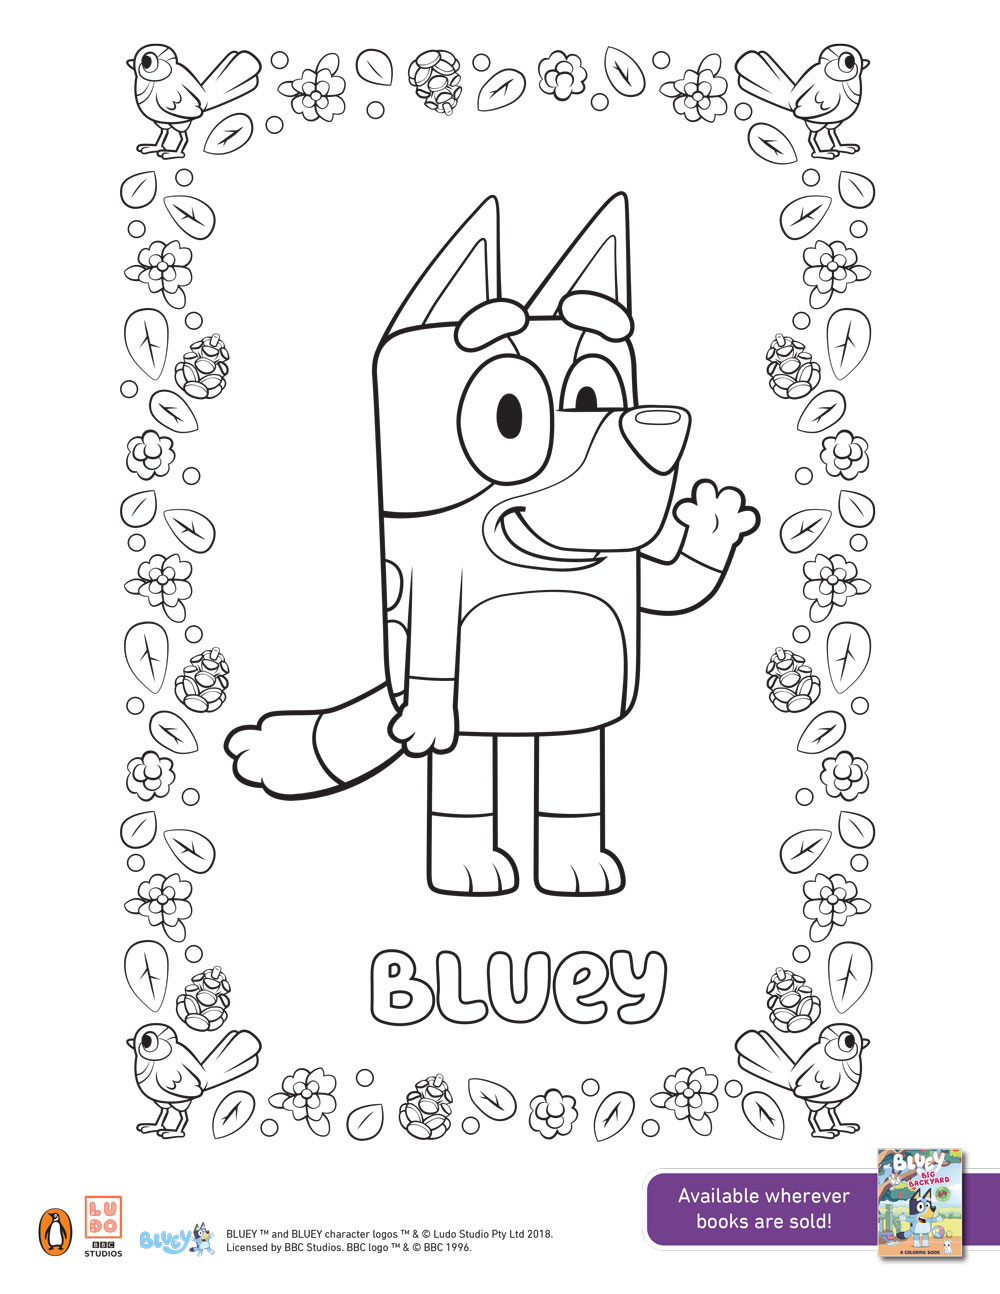 bluey-big-backyard-coloring-pages